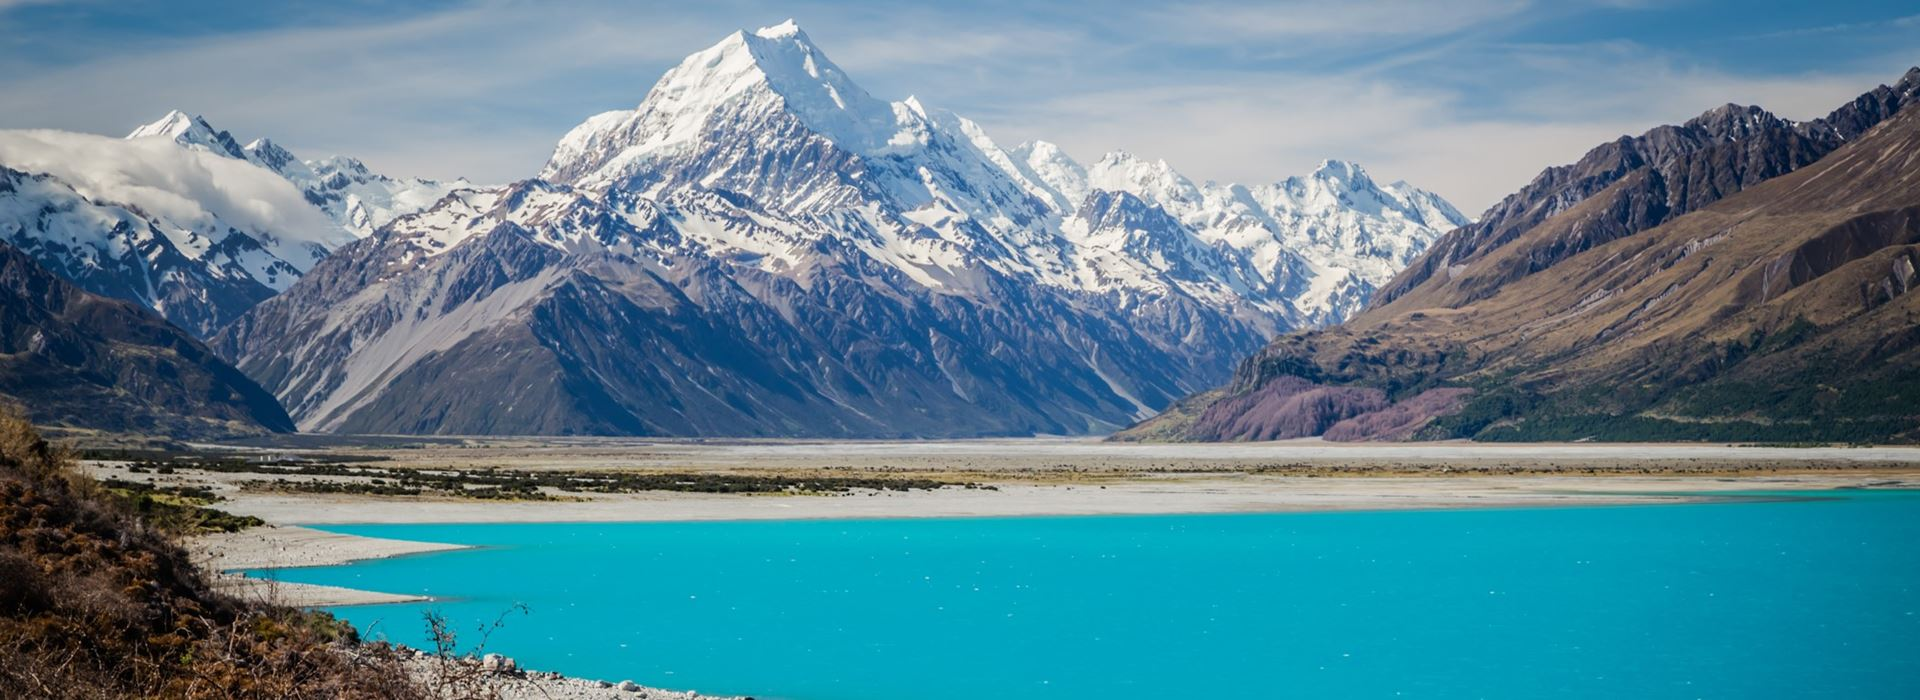 3 Day - Luxury Escape to Magical Mackenzie Region - Mt Cook